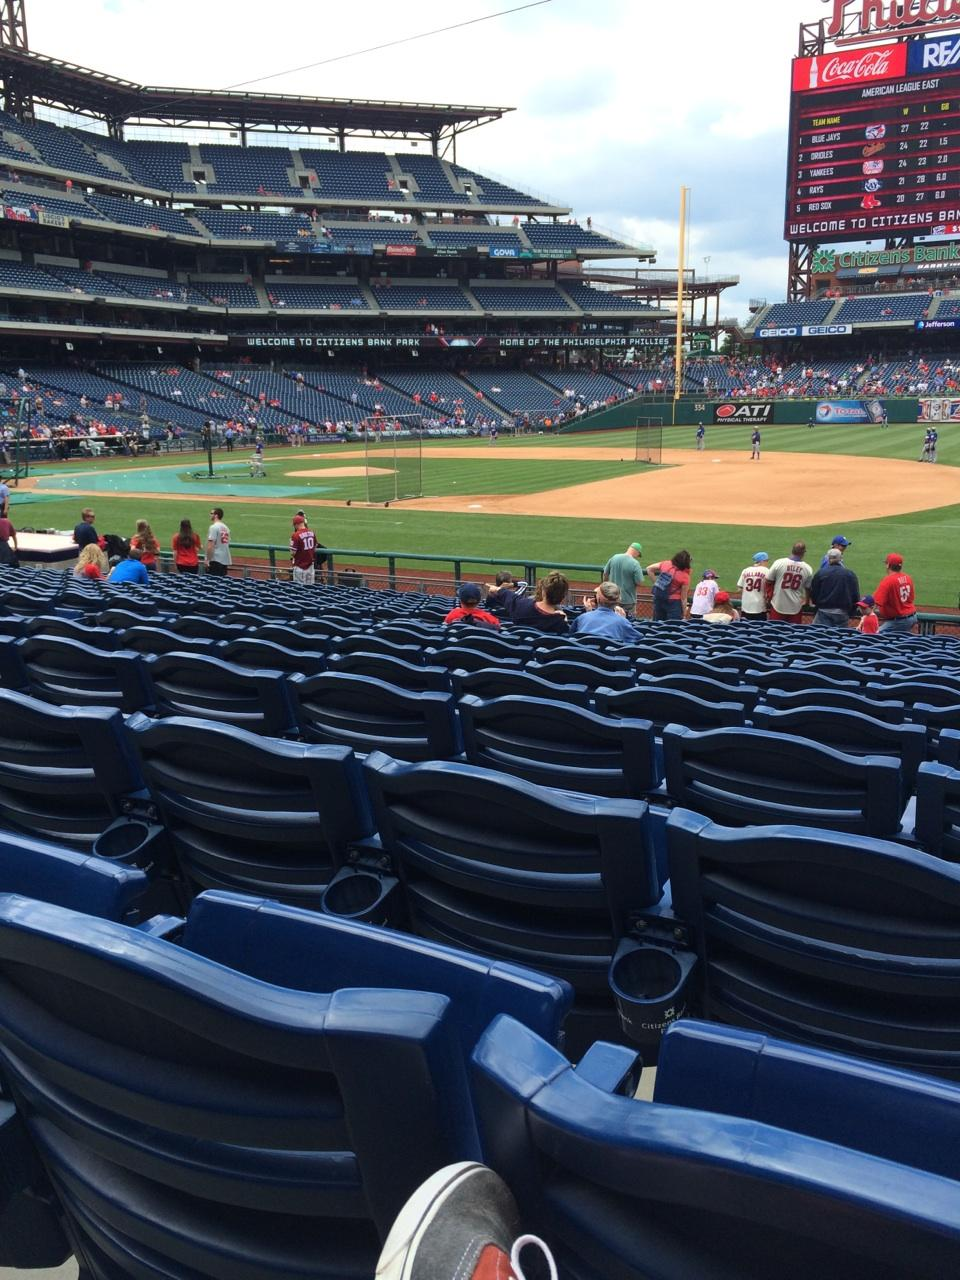 Citizens Bank Park Section 114 Row 19 Seat 6